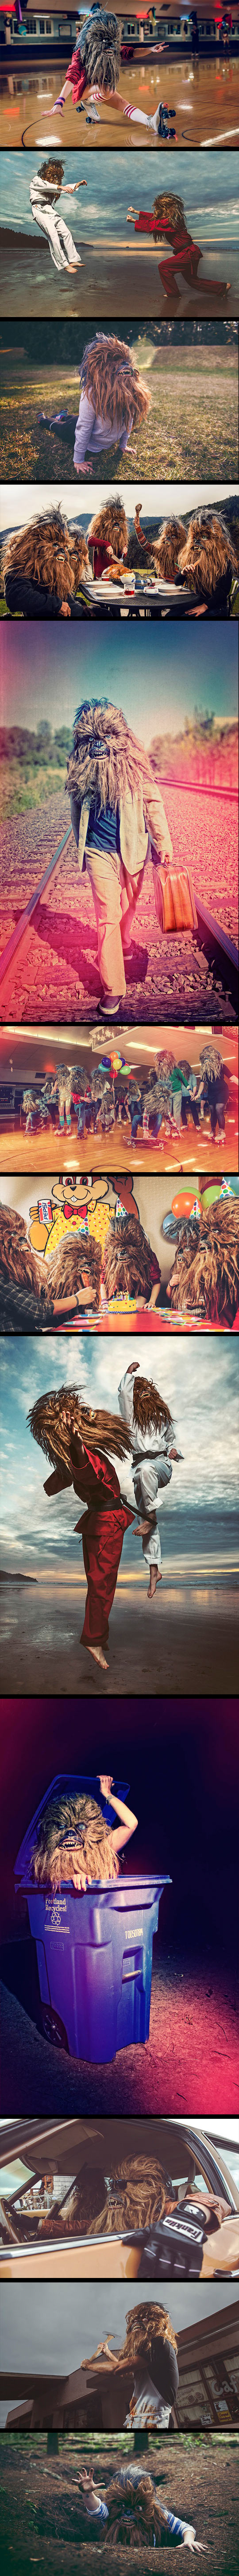 The everyday life of Wookiees…